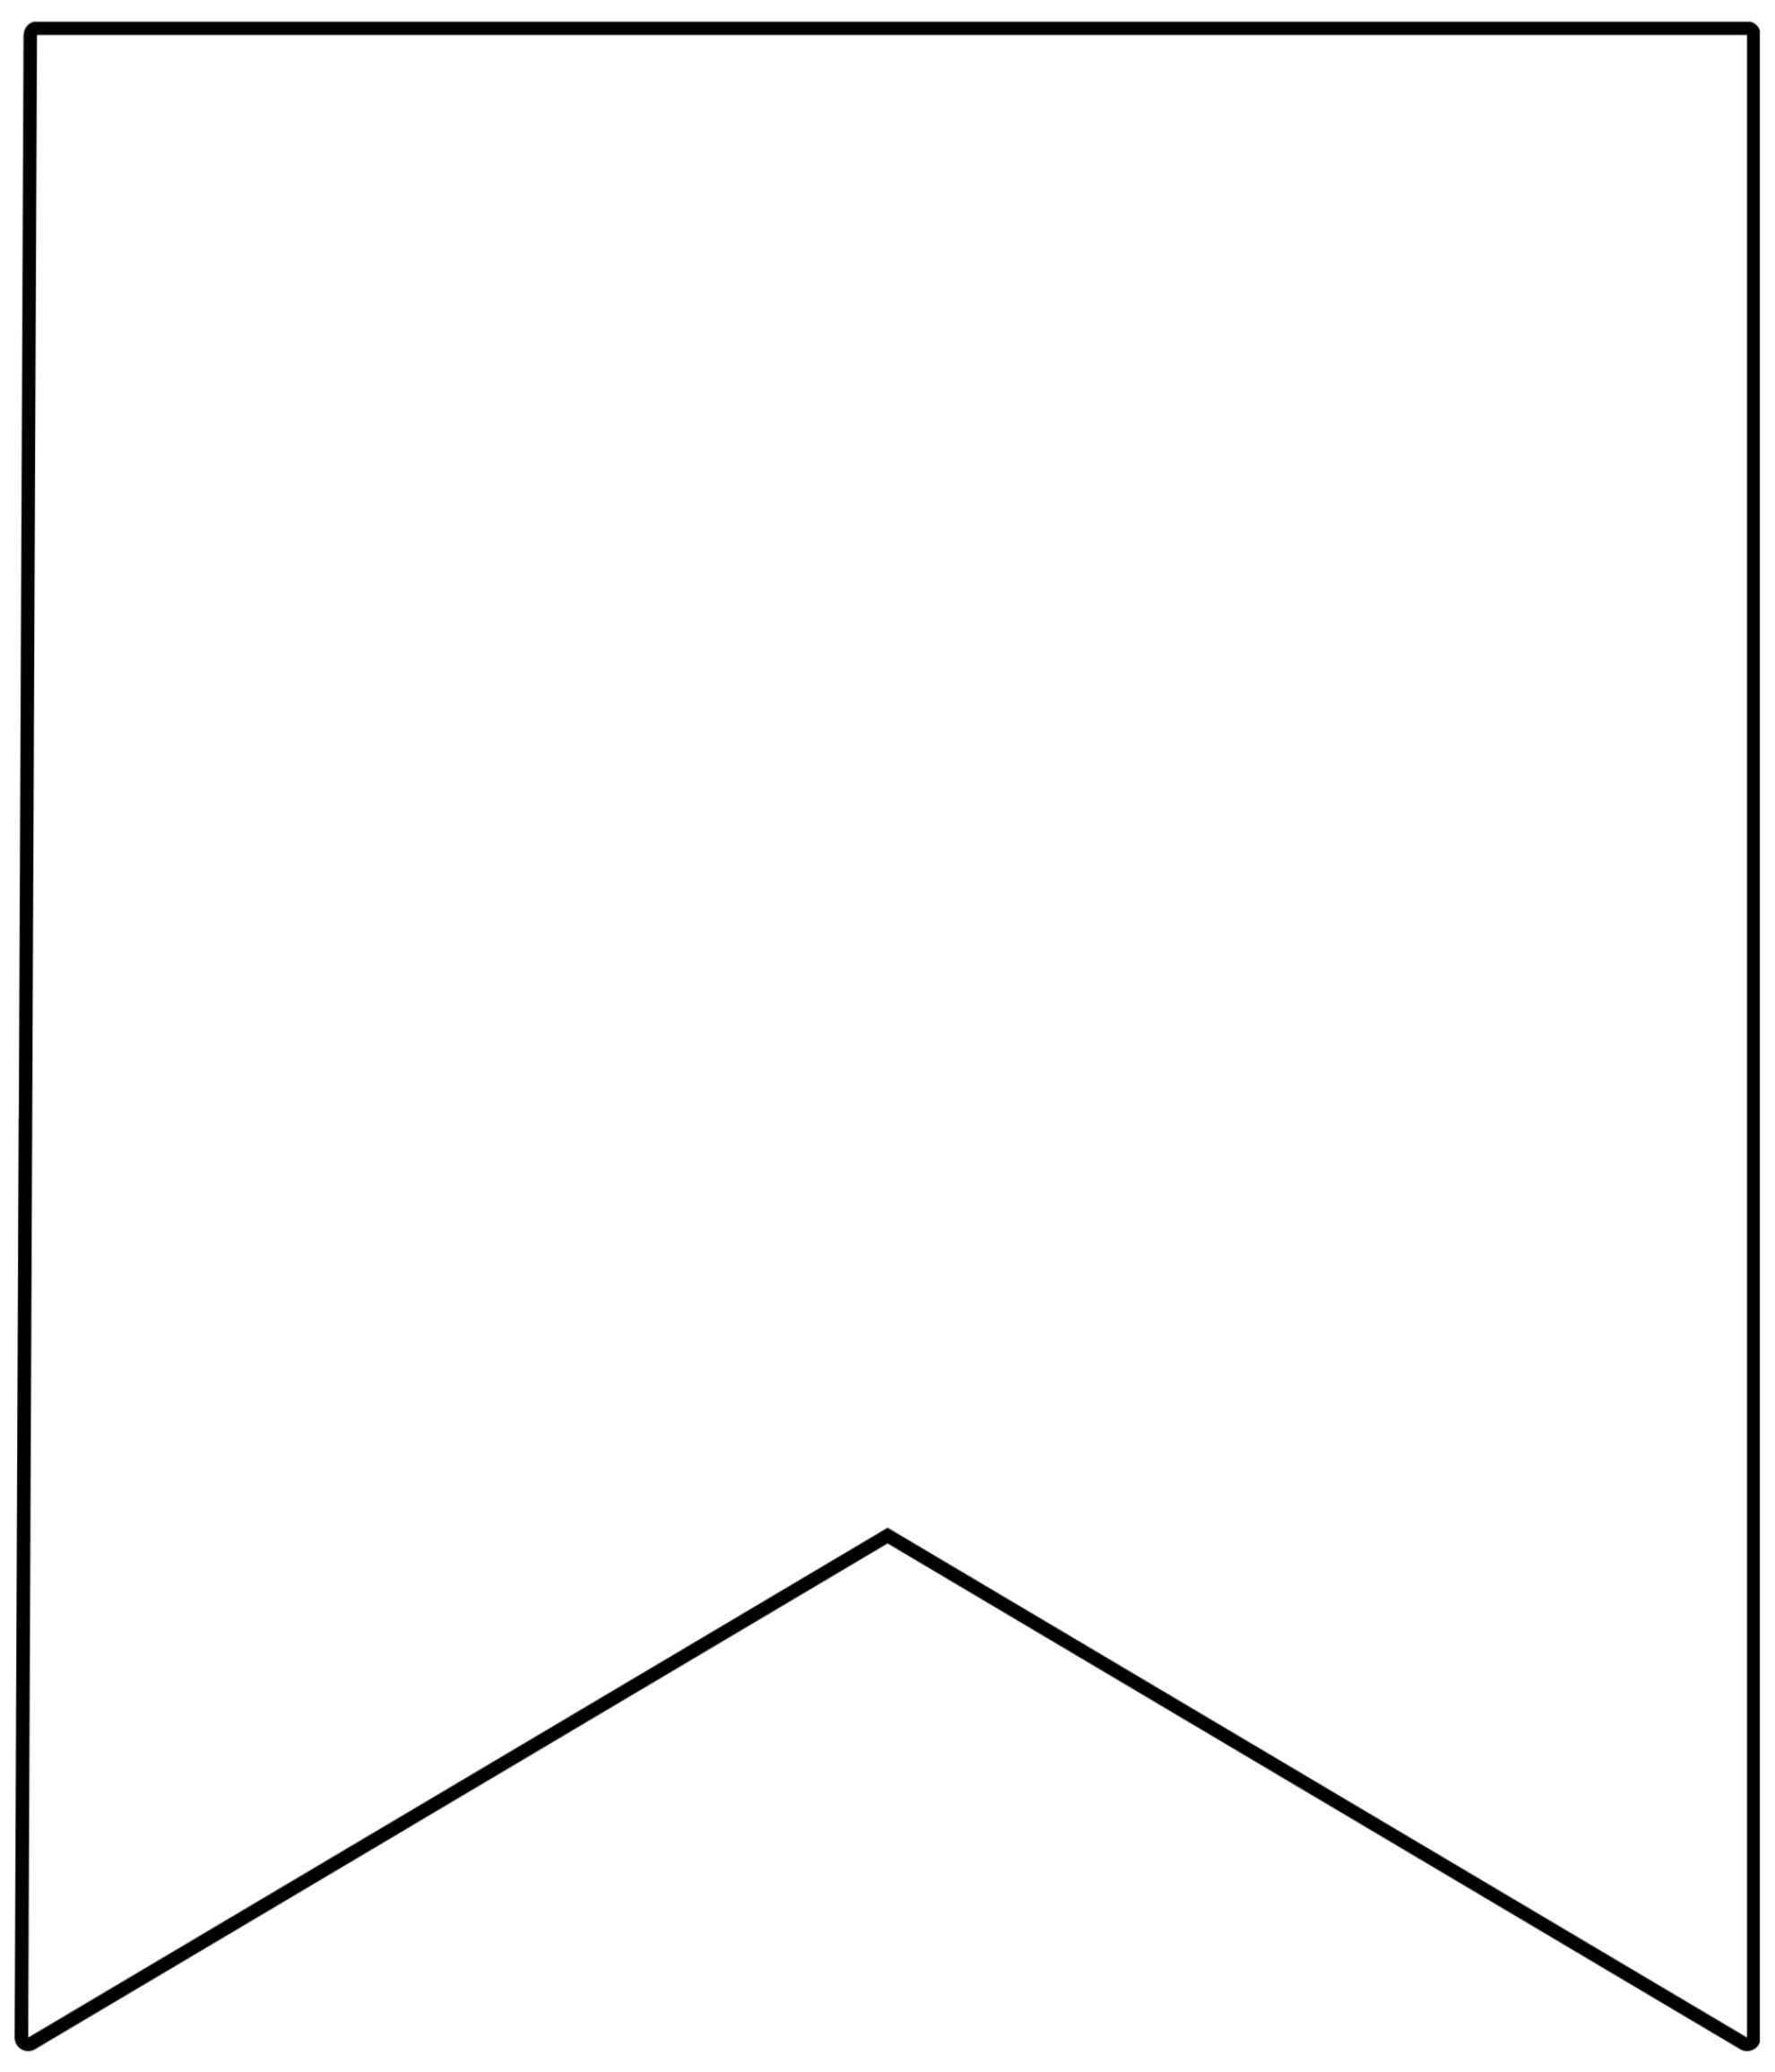 Free Printable Banner Templates {Blank Banners} - Paper With Regard To Free Printable Banner Templates For Word